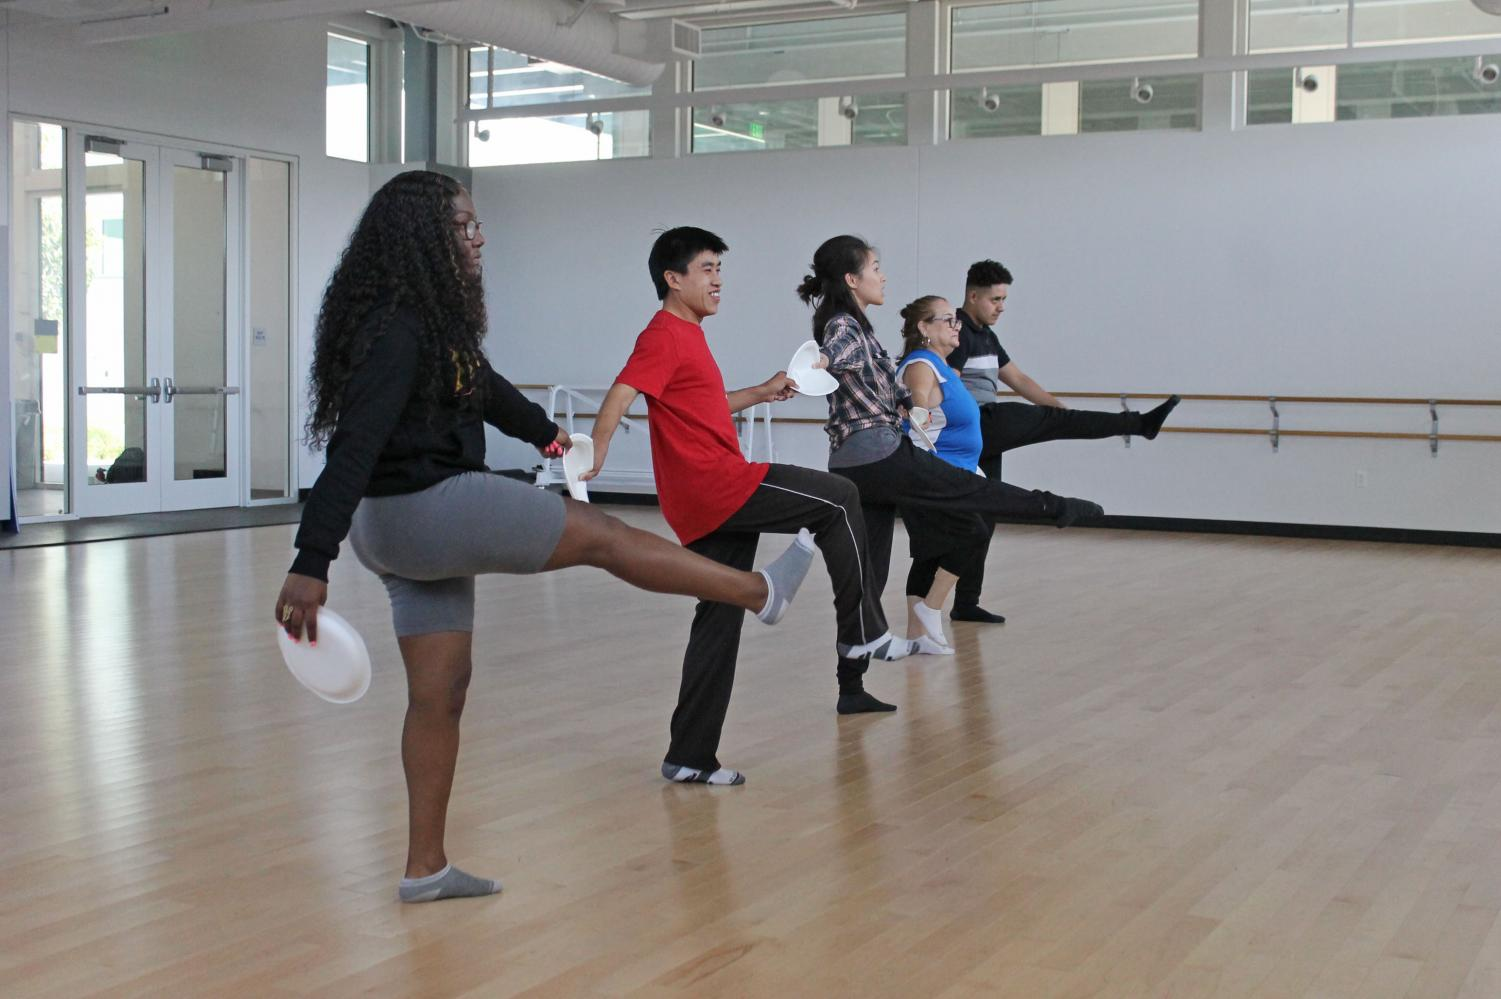 Adaptive Dance: students and instructor dance during the first-thought adaptive PE course at Cerritos College by Beatrice Horner, a part-time adaptive dance professor. she is hands-on and teaches students proper form and rotation to protect their knees. Photo credit: Derrick Coleman